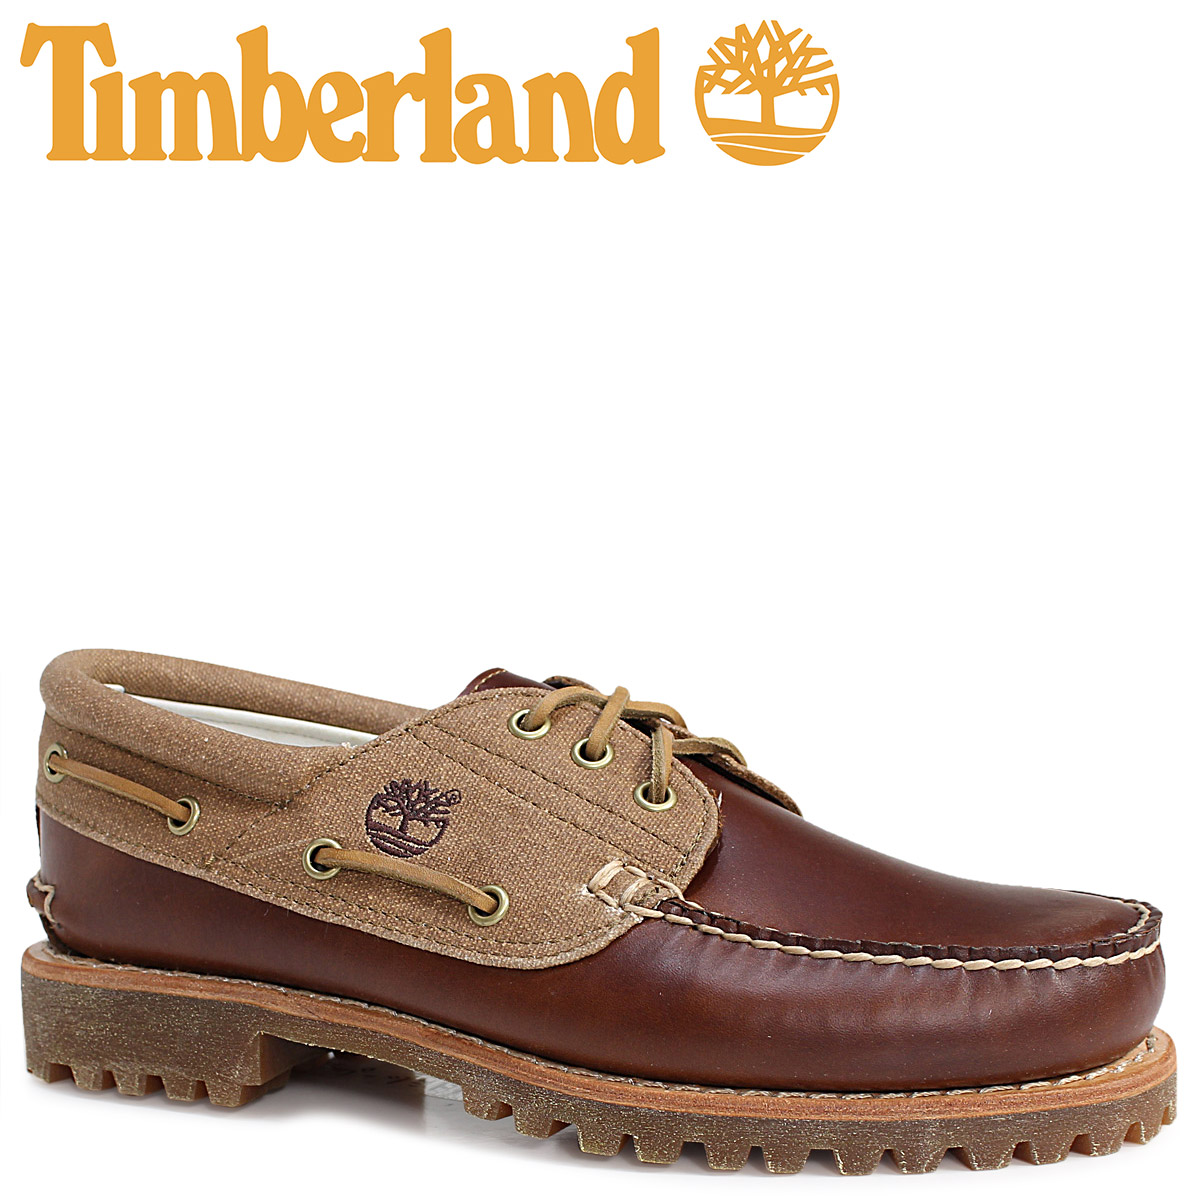 80624a228 ALLSPORTS  Timberland deck shoes men Timberland shoes AUTHENTICS 3 ...